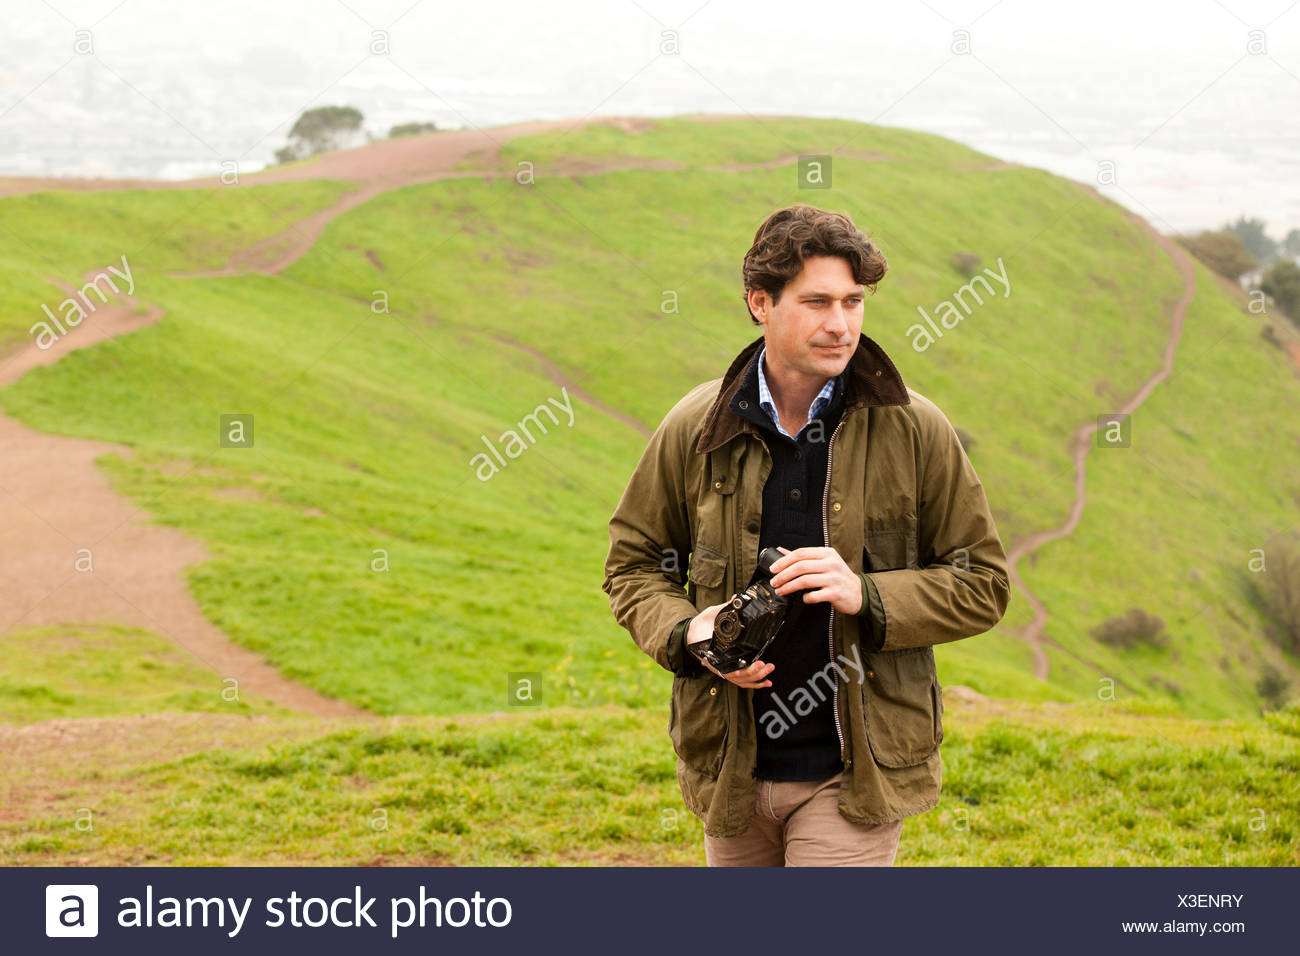 Mid adult man holding vintage camera in countryside, looking away - Stock Image